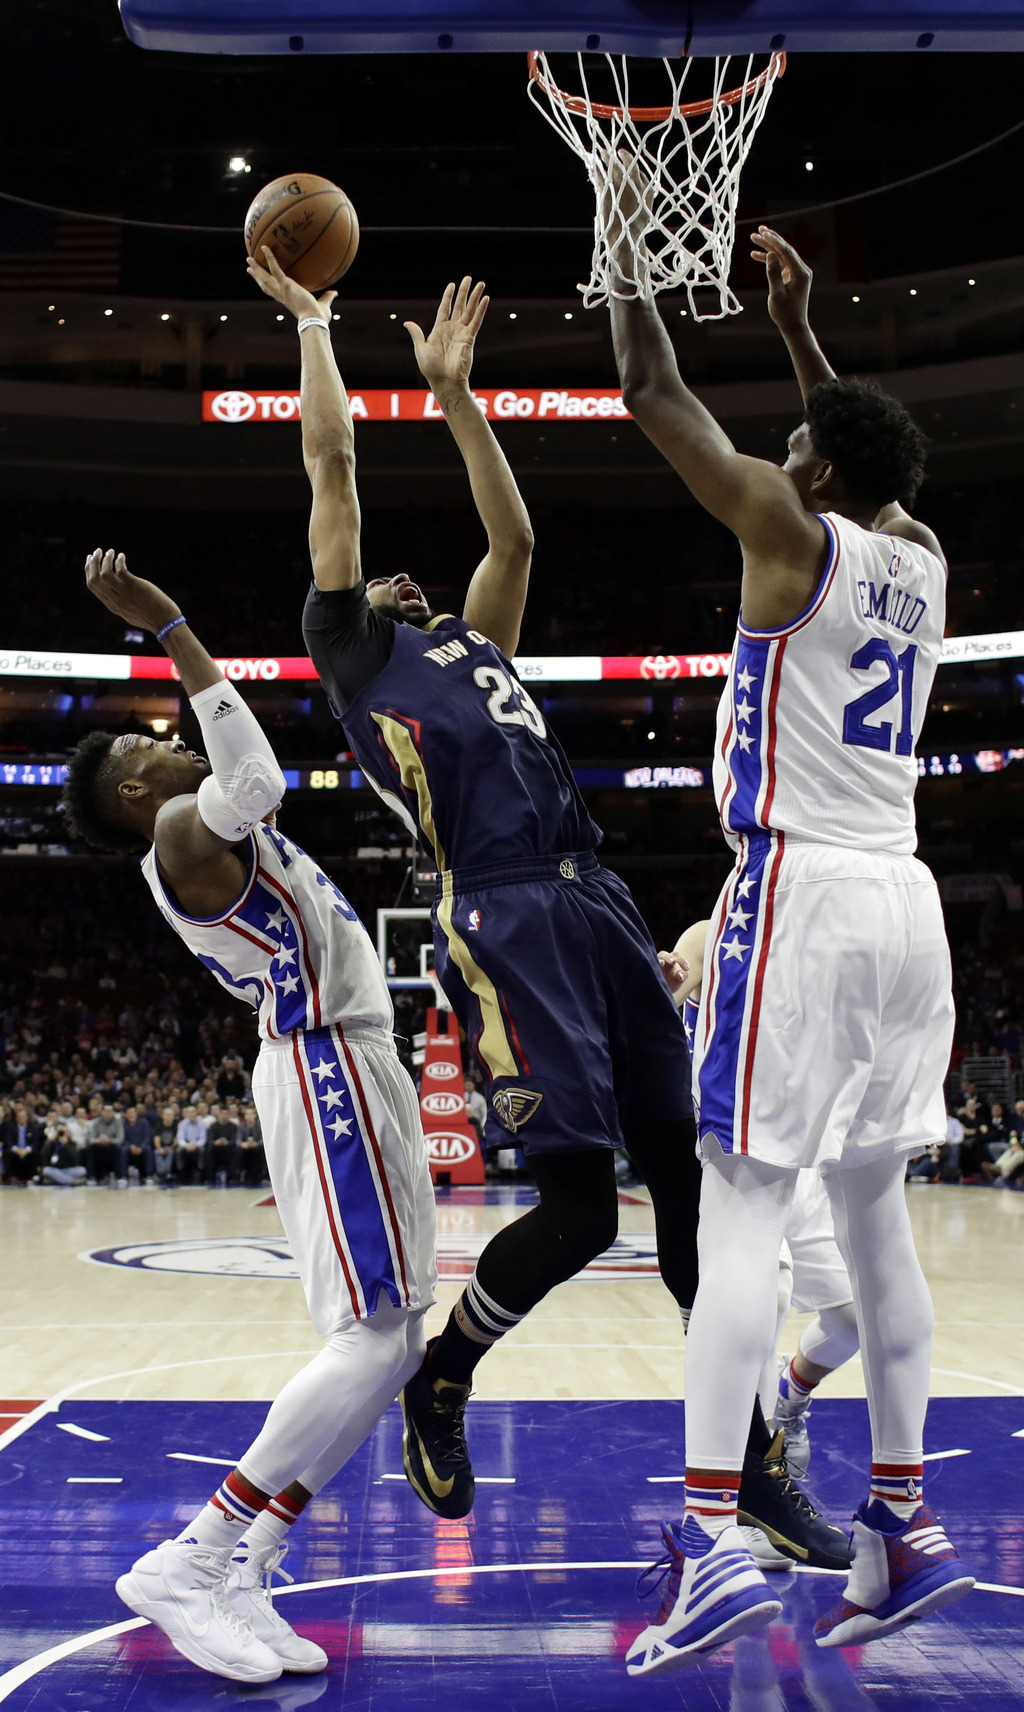 New Orleans Pelicans' Anthony Davis, center, goes up for a shot between Philadelphia 76ers' Robert Covington, left, and Joel Embiid dur...